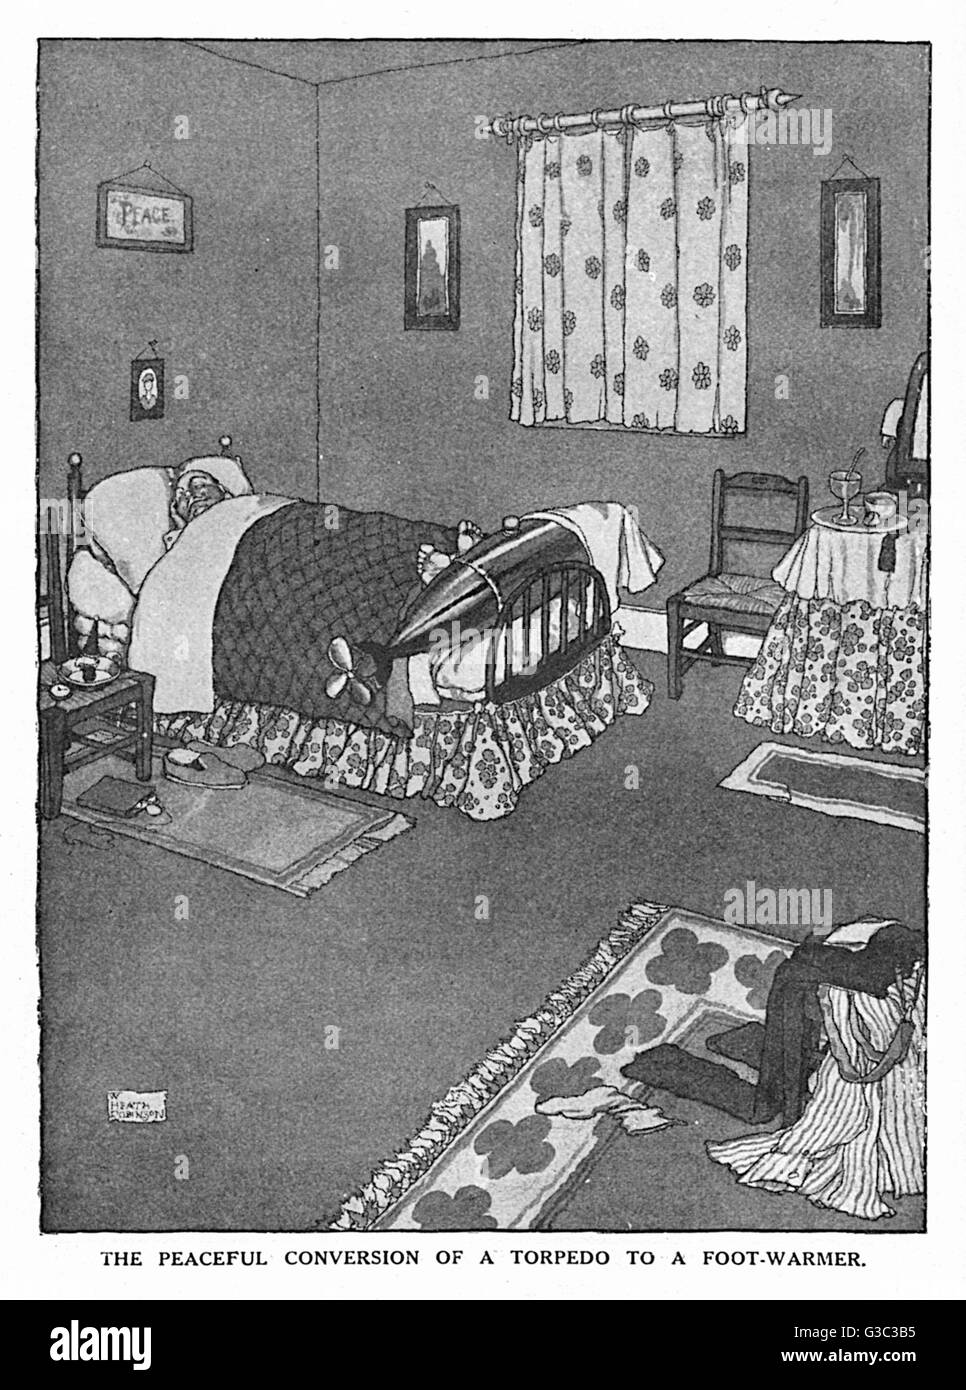 The Peaceful Conversion of a Torpedo to a Foot-Warmer.  One of a series of ideas suggested by William Heath Robinson - Stock Image